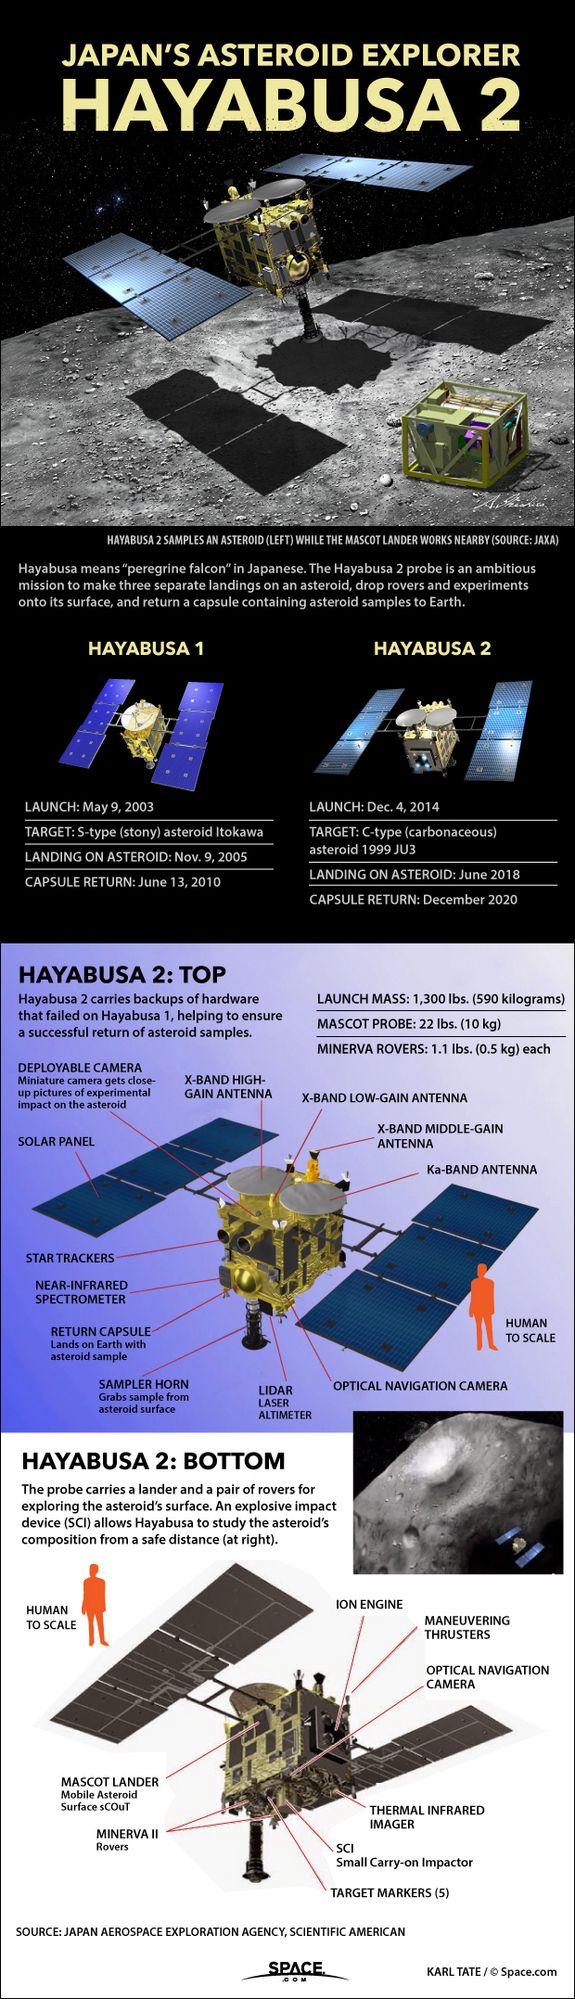 Japan's Hayabusa 2 embarks on landmark mission to hunt down an asteroid that could hold clues to how Earth formed [Space Future: http://futuristicnews.com/category/future-space/]